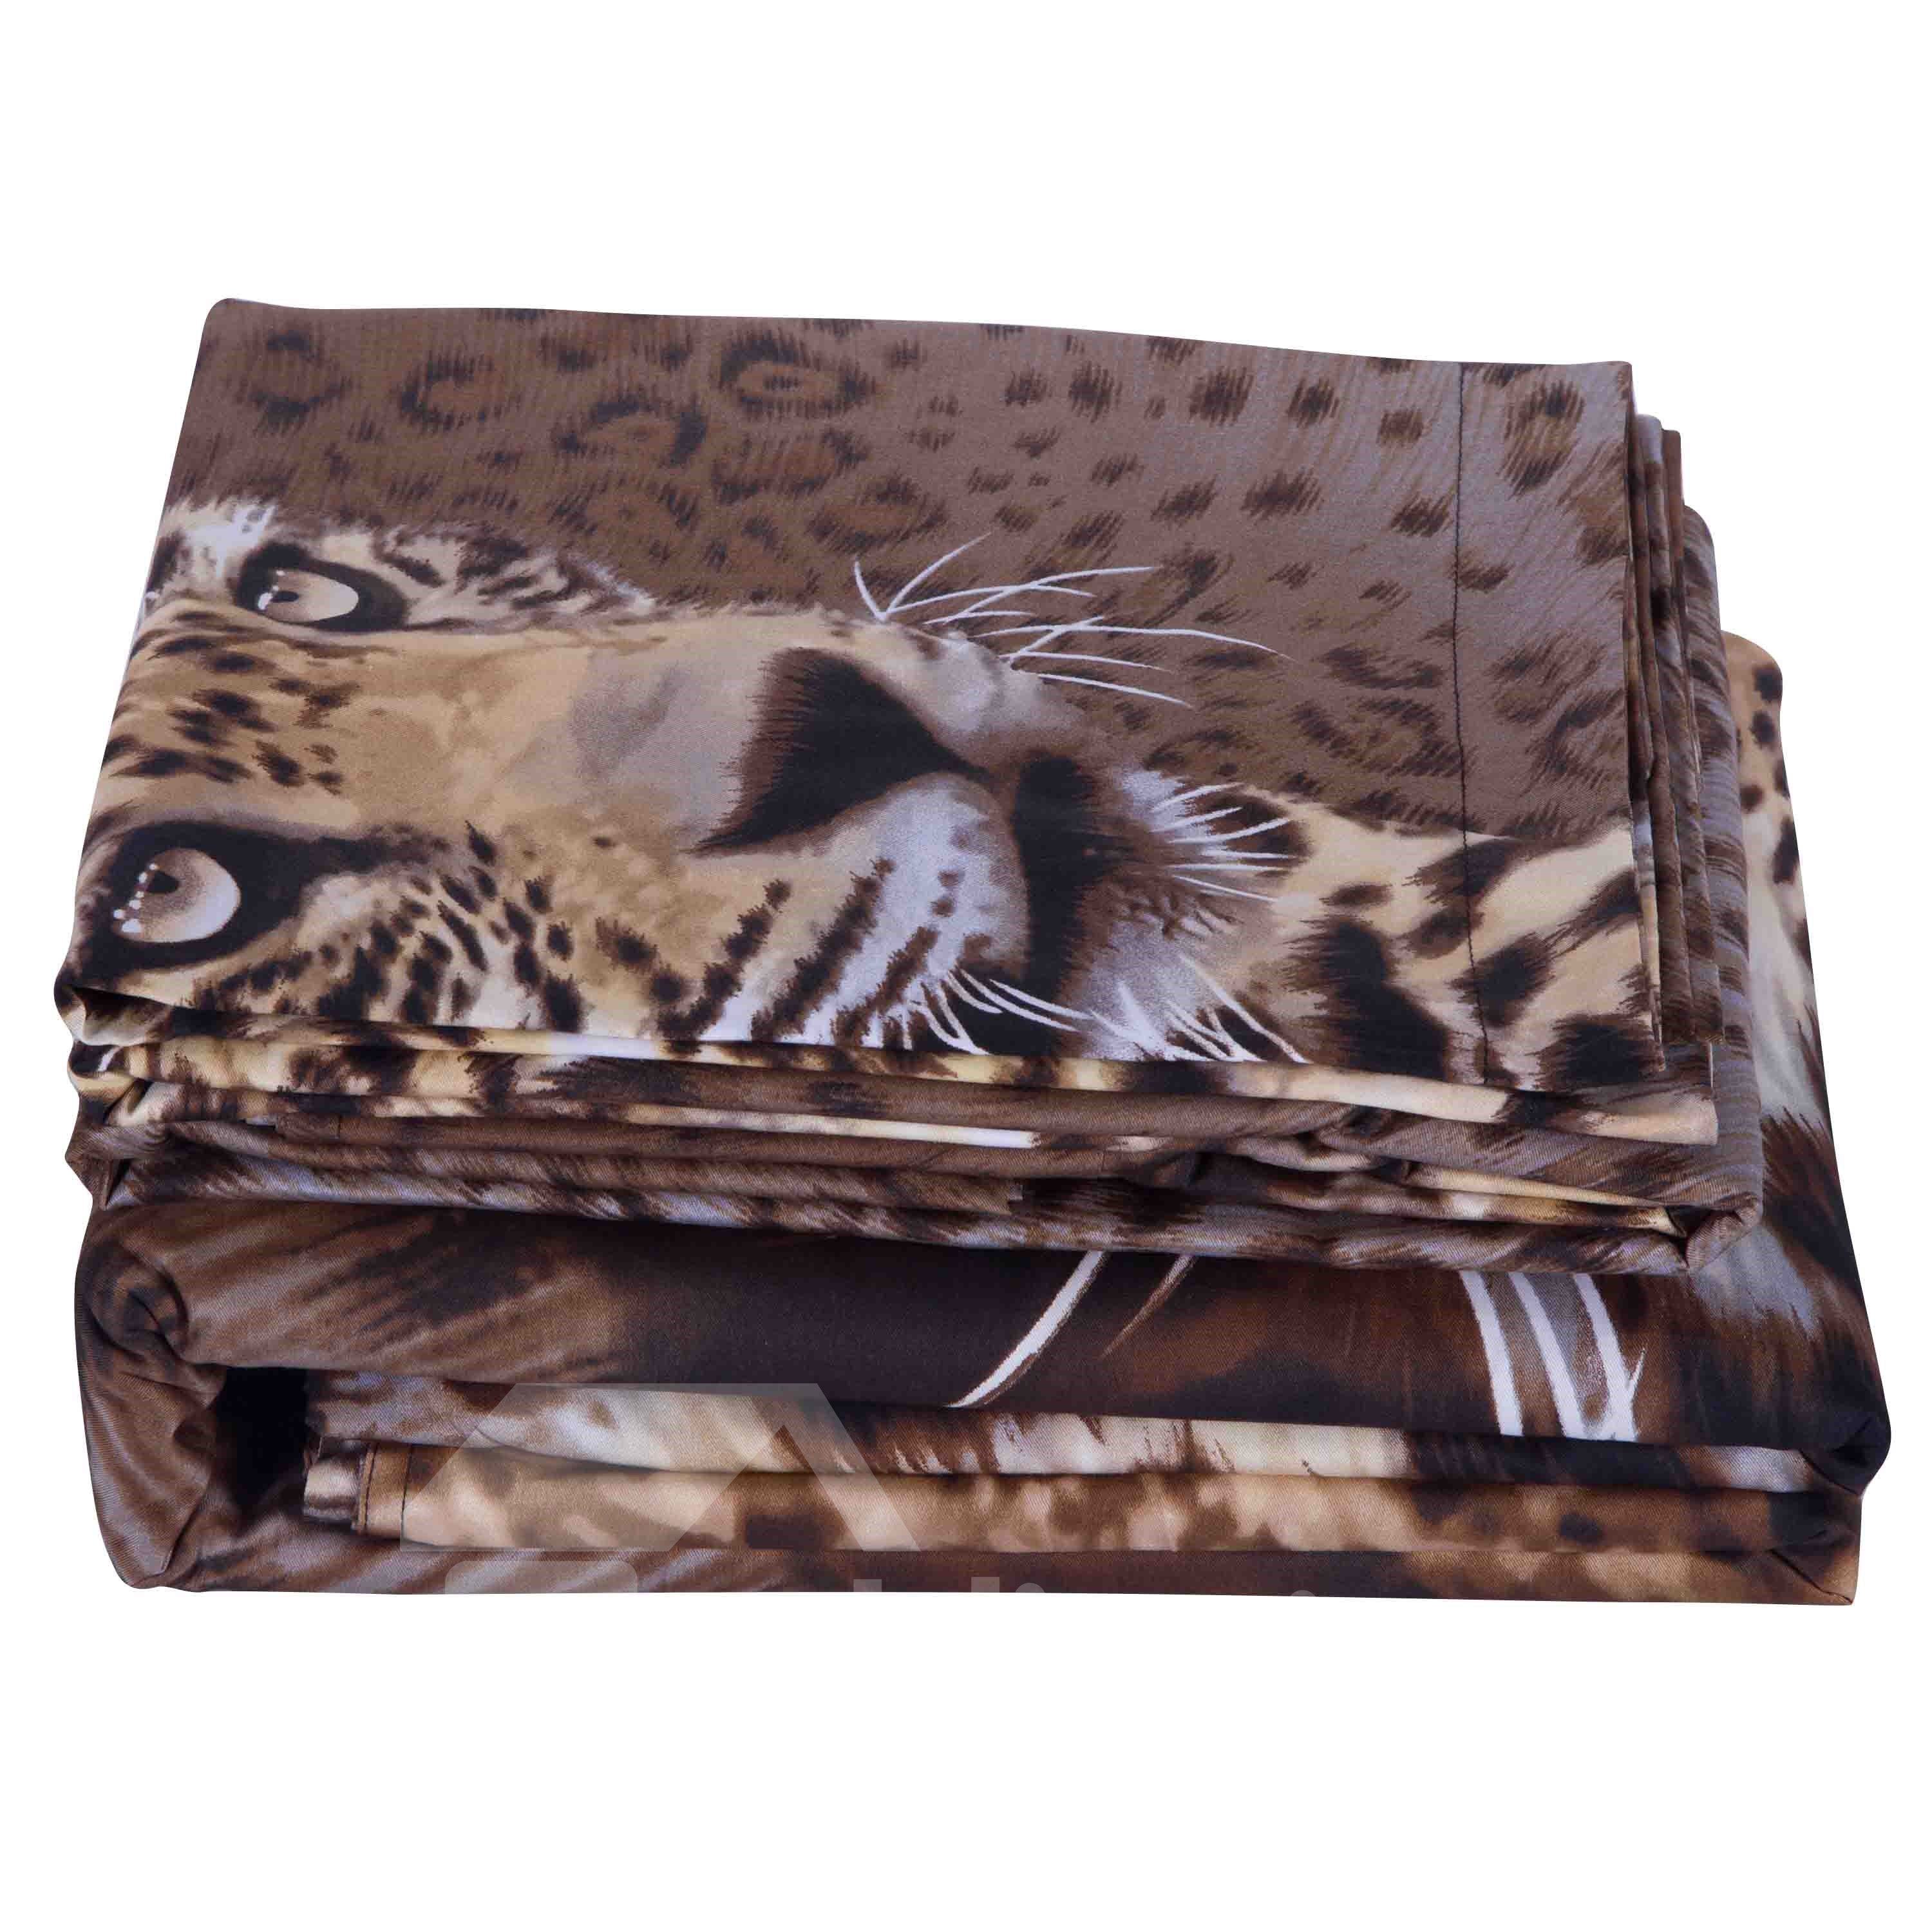 3D Leopard Animal Printed Cotton 4-Piece Bedding Sets/Duvet Covers